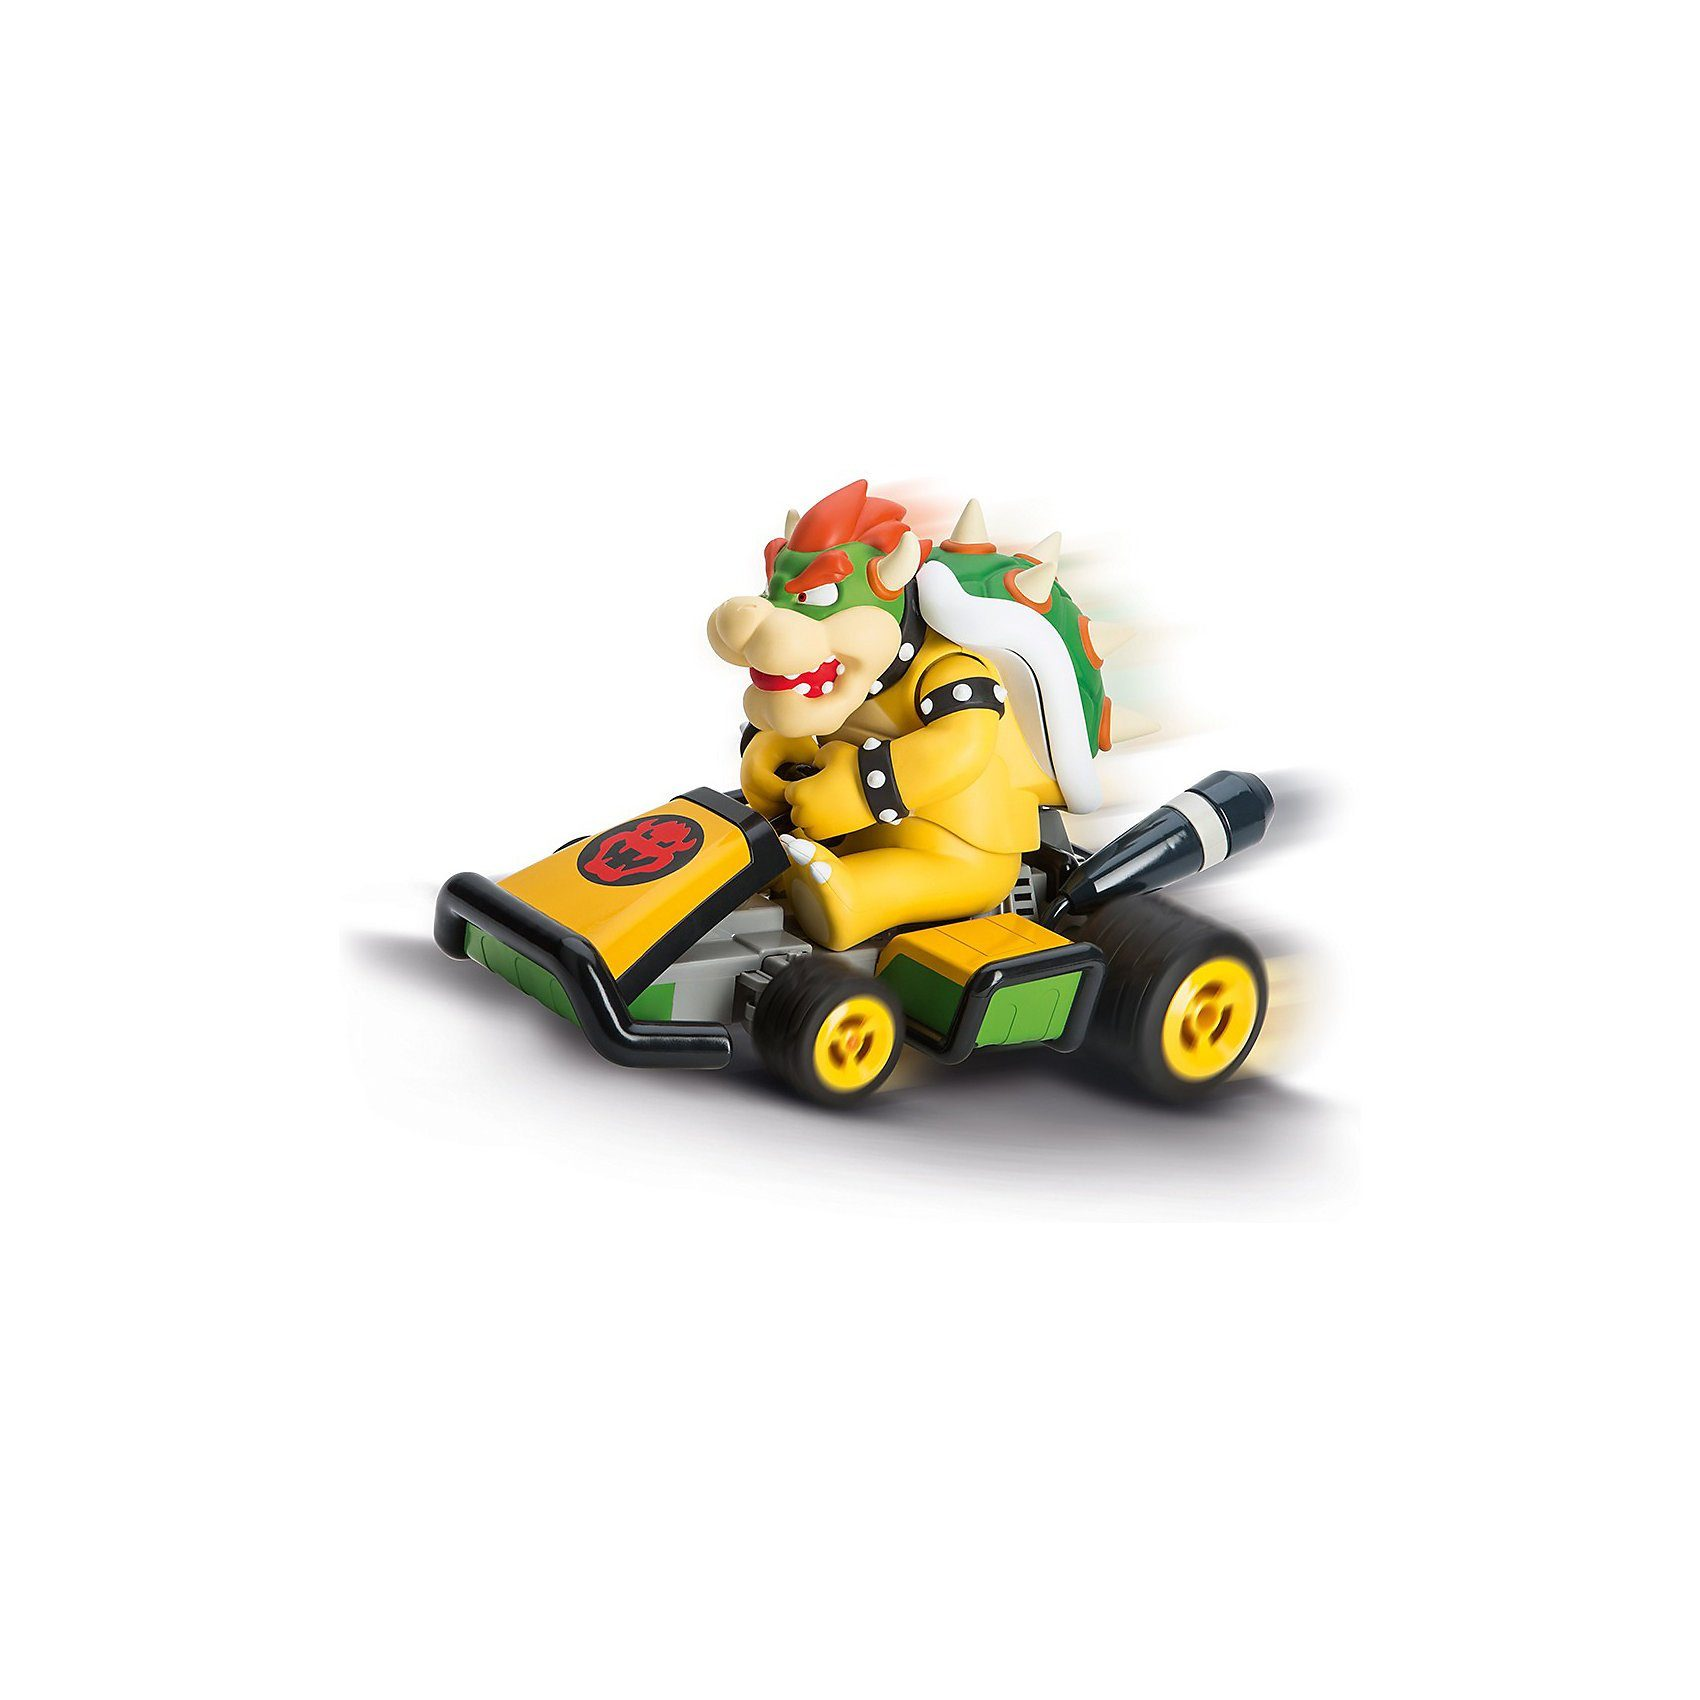 Carrera RC Servo Tronic Mario Cart 7, Bowser 2,4 GHz 1:16